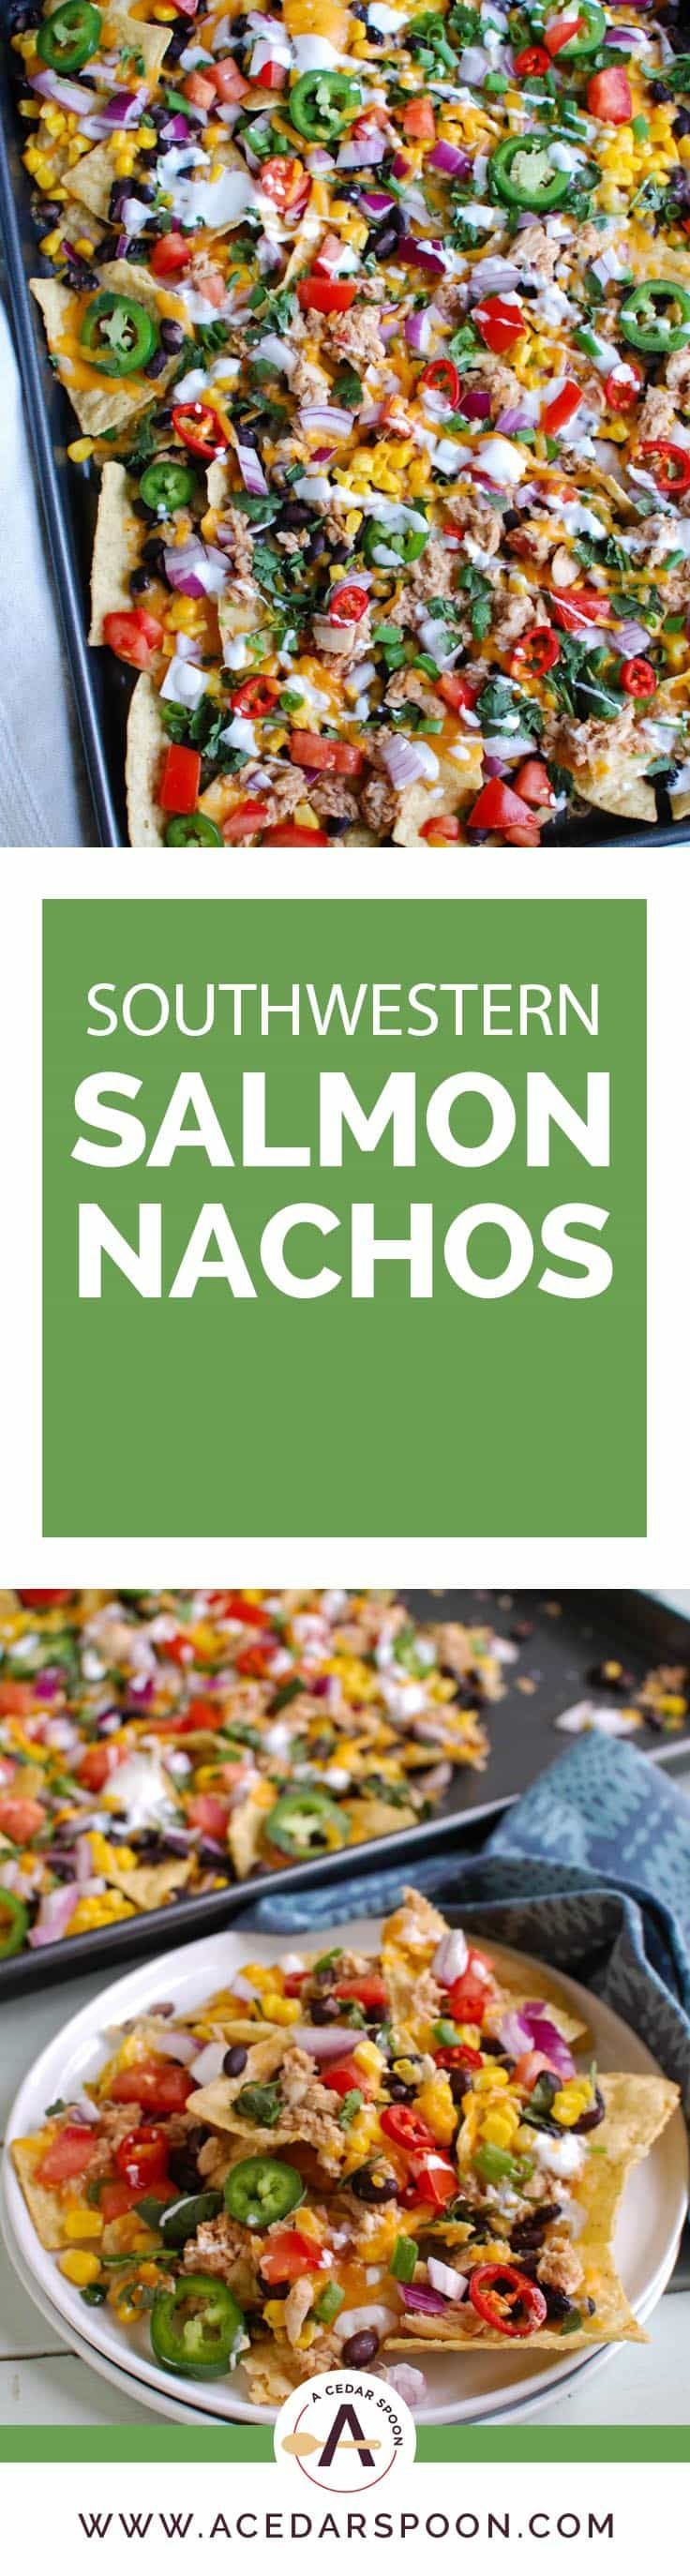 Southwestern Salmon Nachos take traditional nachos to a new level mixing salsa and salmon together and topping that with black beans, corn, shredded cheese, tomatoes, red onion, cilantro, green onion, jalapeños, red chiles and a drizzle of sour cream. These nachos are baked to perfection and are a nice lunch for Father's Day or football season.  // A Cedar Spoon #ad #BestoftheSea